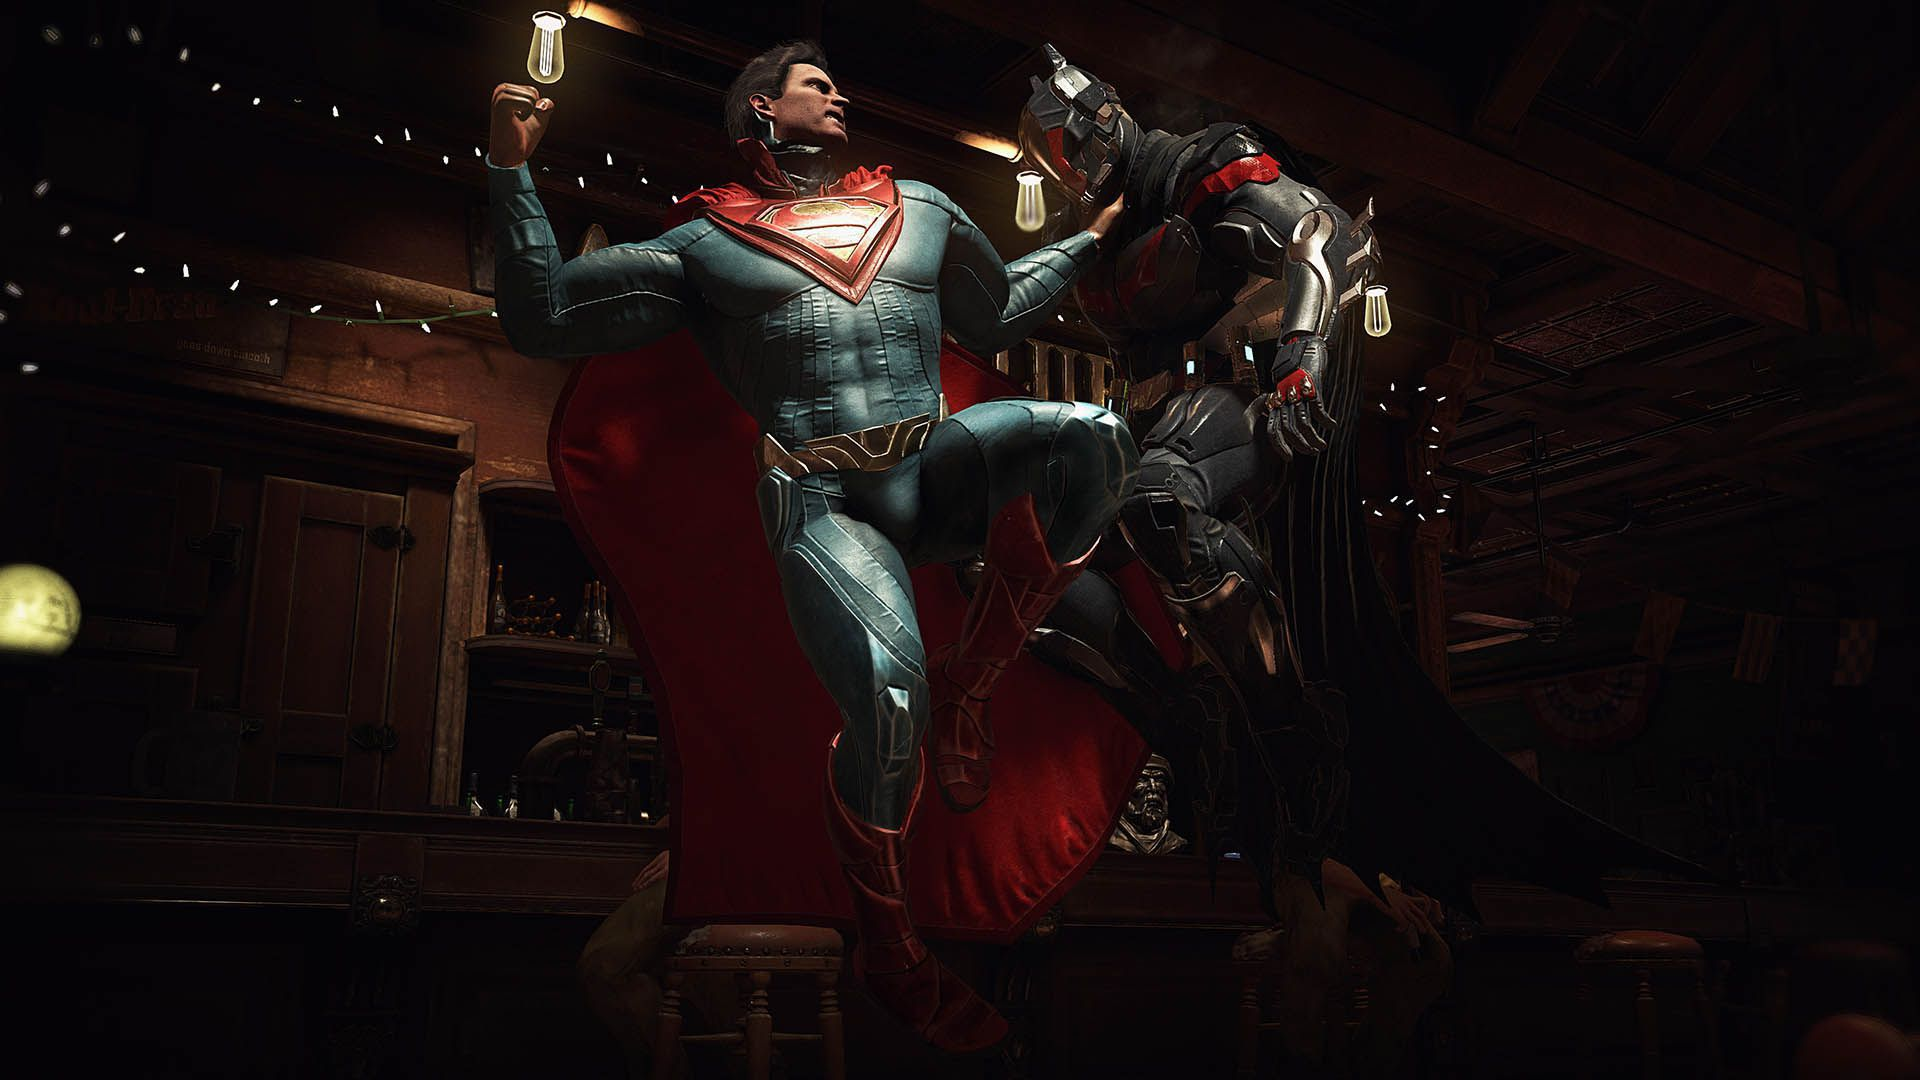 Injustice 2 High Quality Wallpapers - Injustice 2 - HD Wallpaper